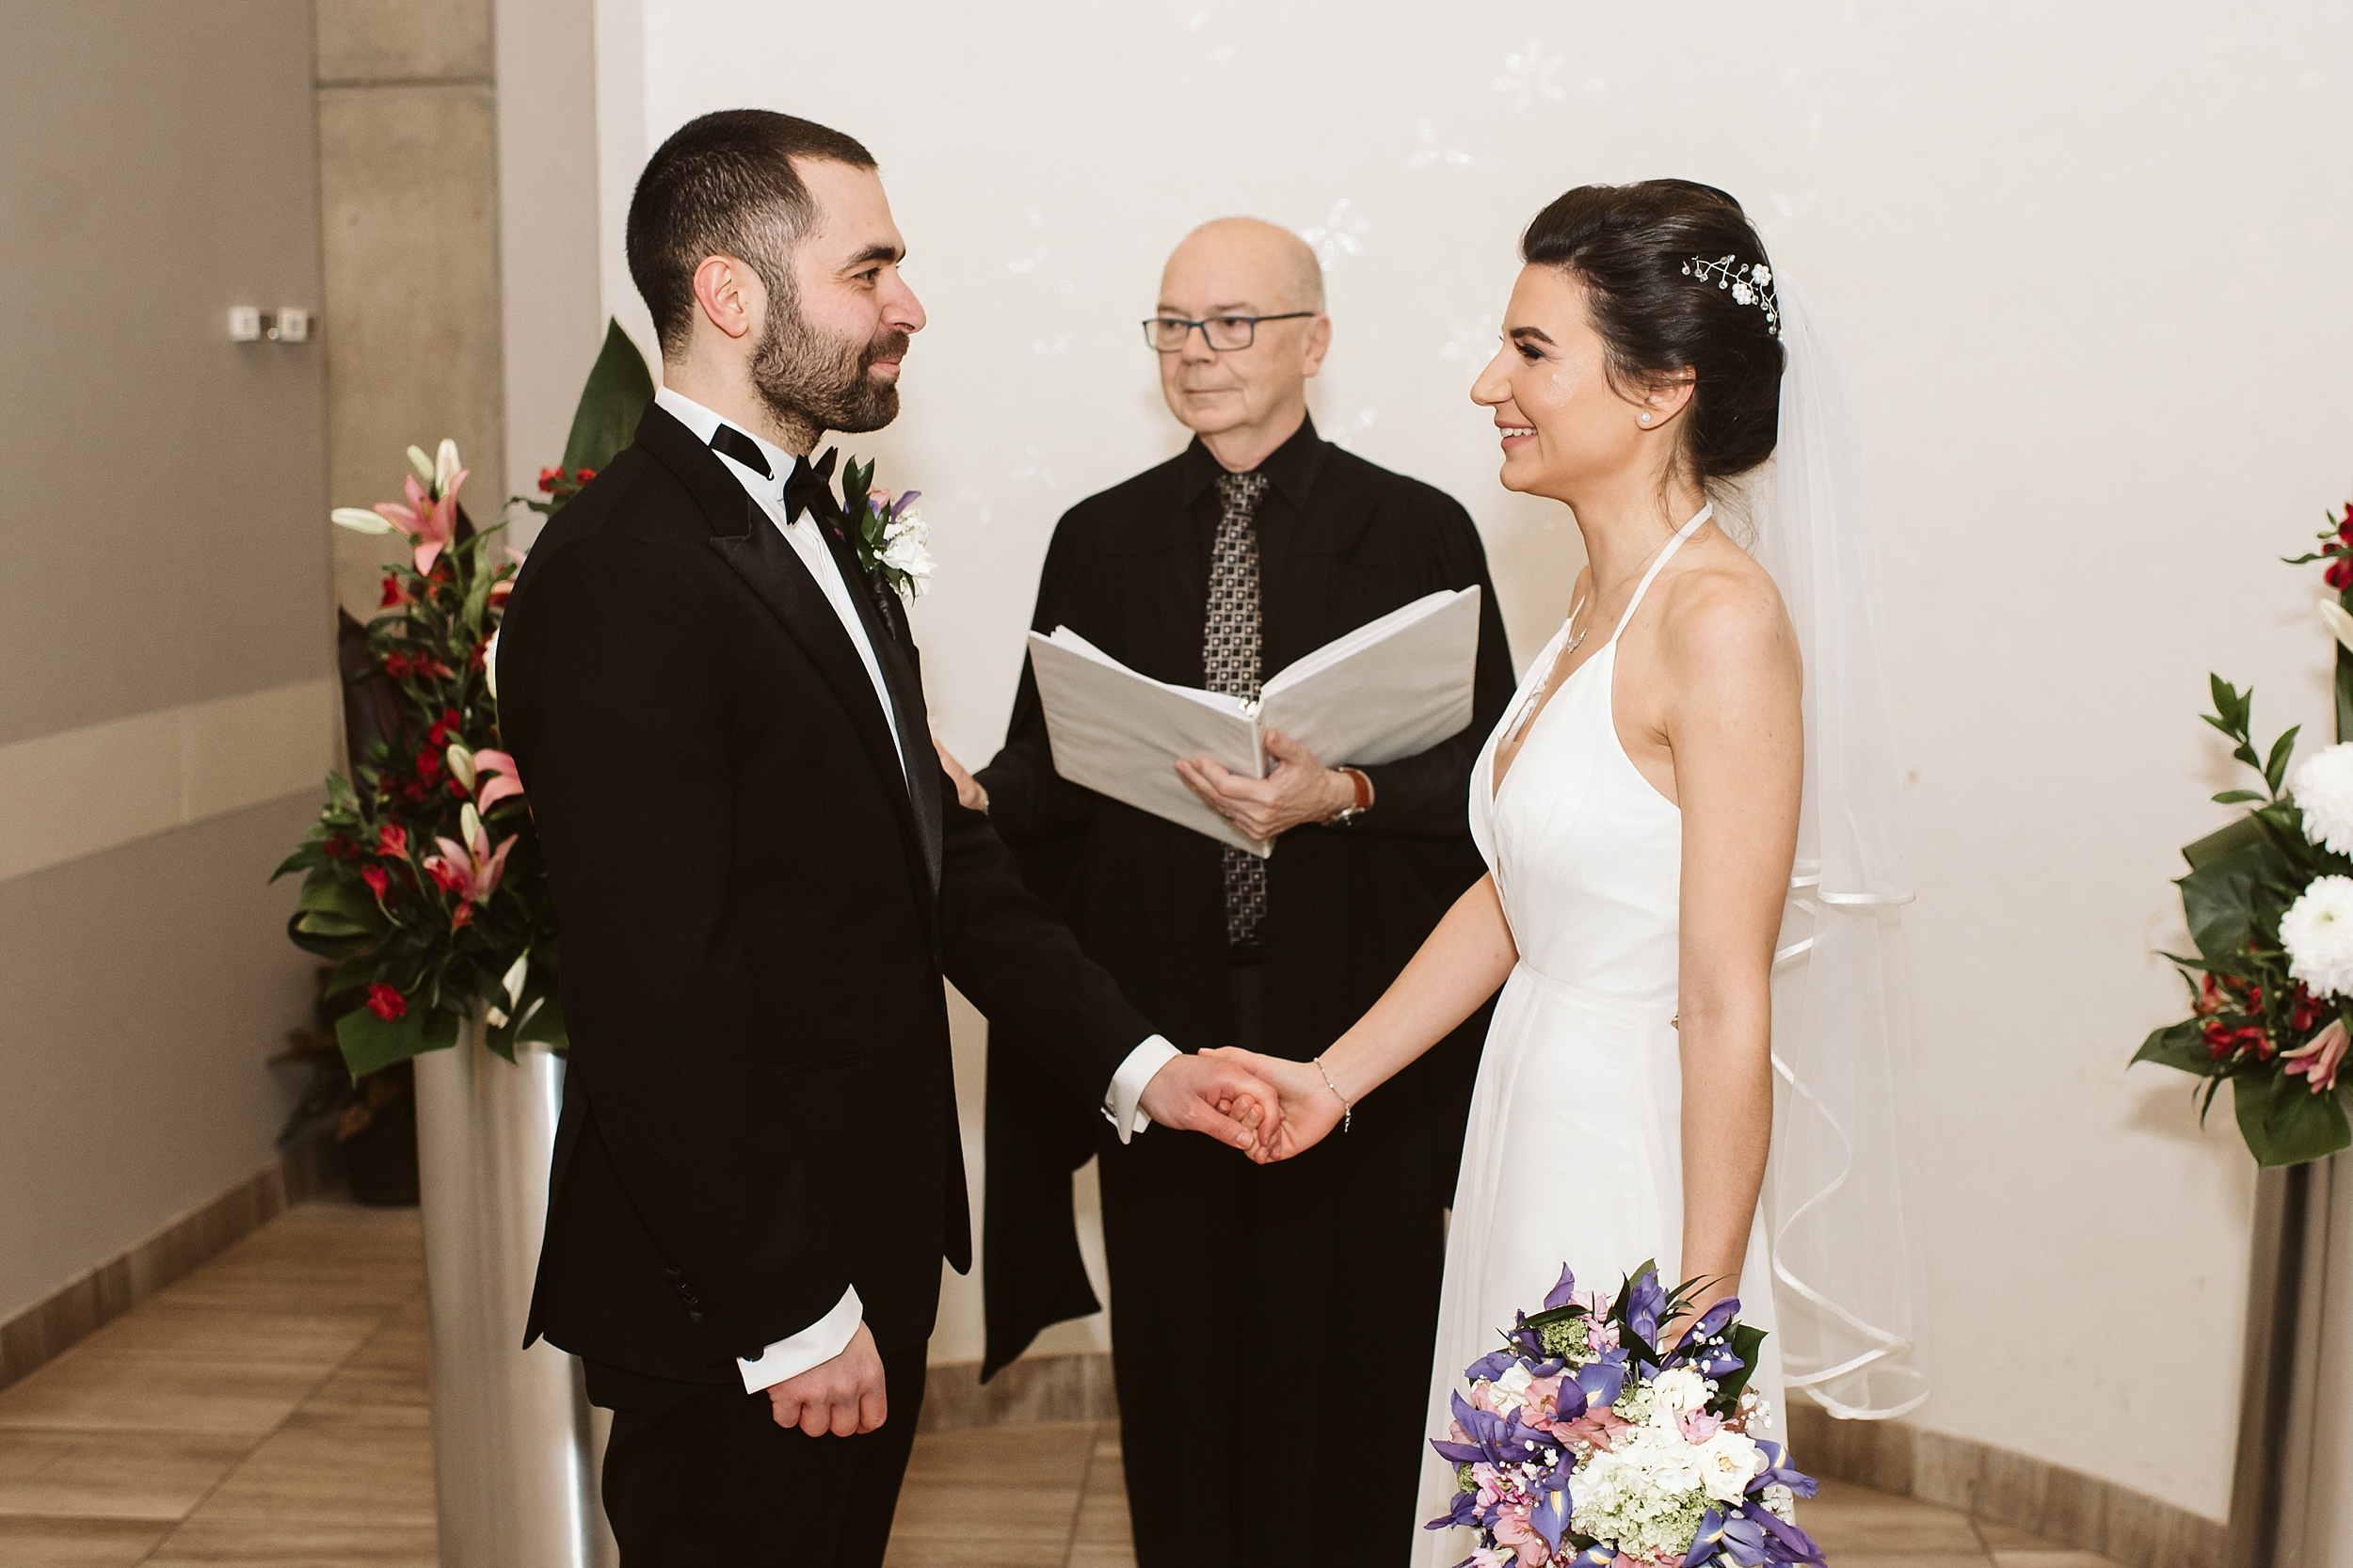 Toronto_City_Hall_Elopement_Wedding_Photographer019.jpg